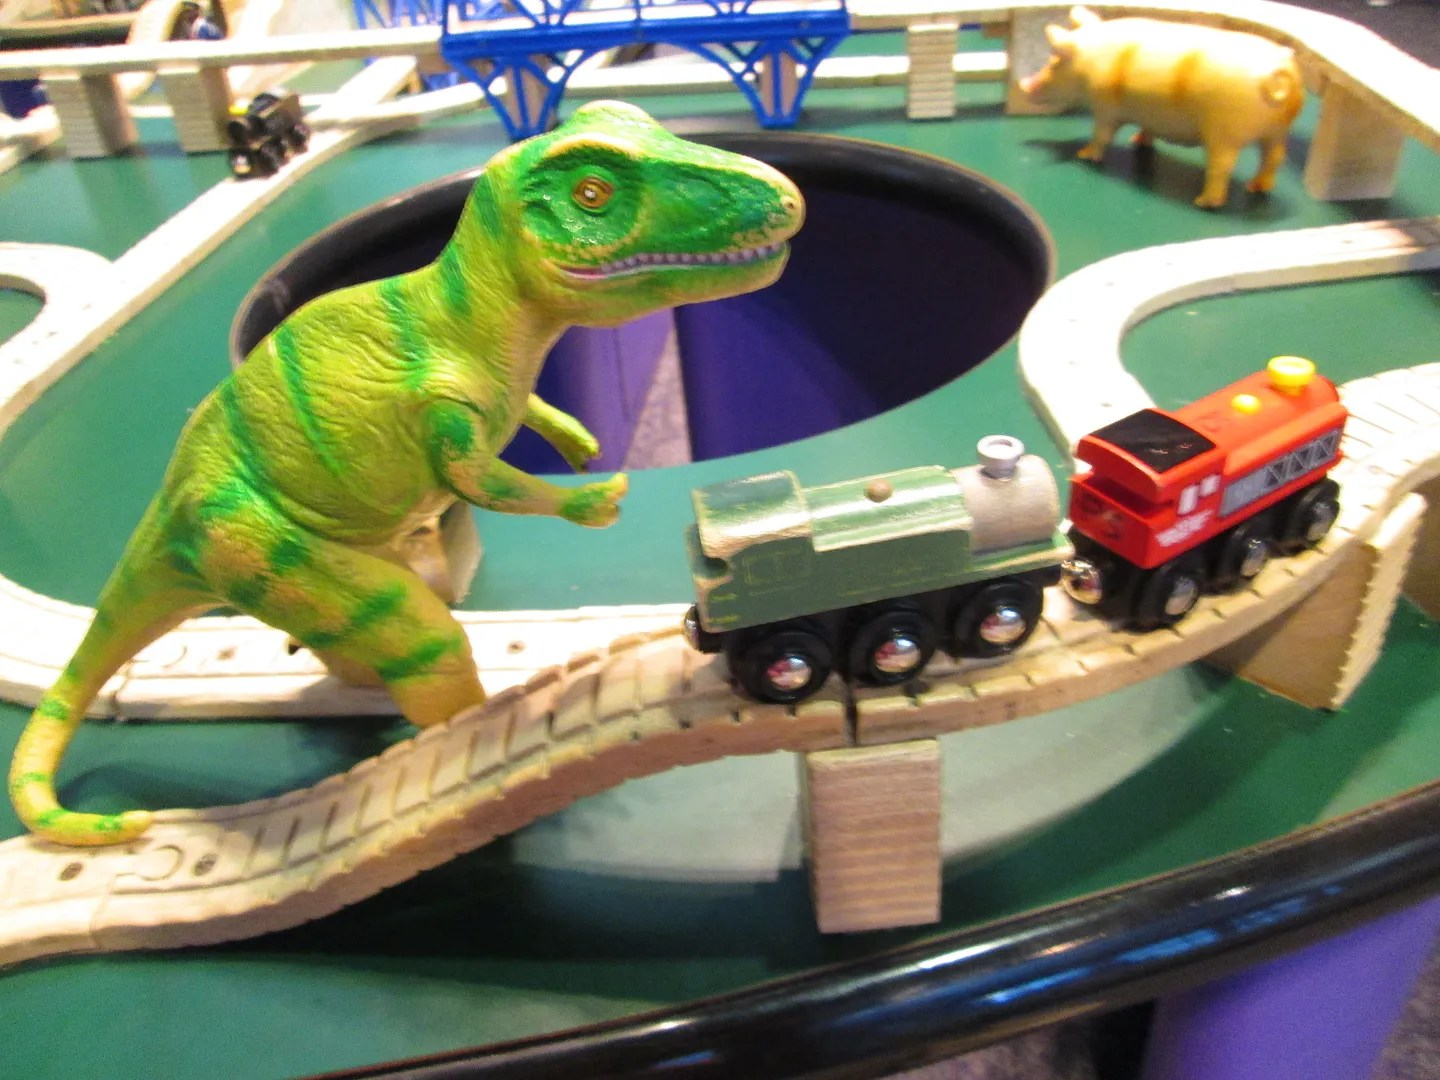 plastic dinosaur menacing wooden trains